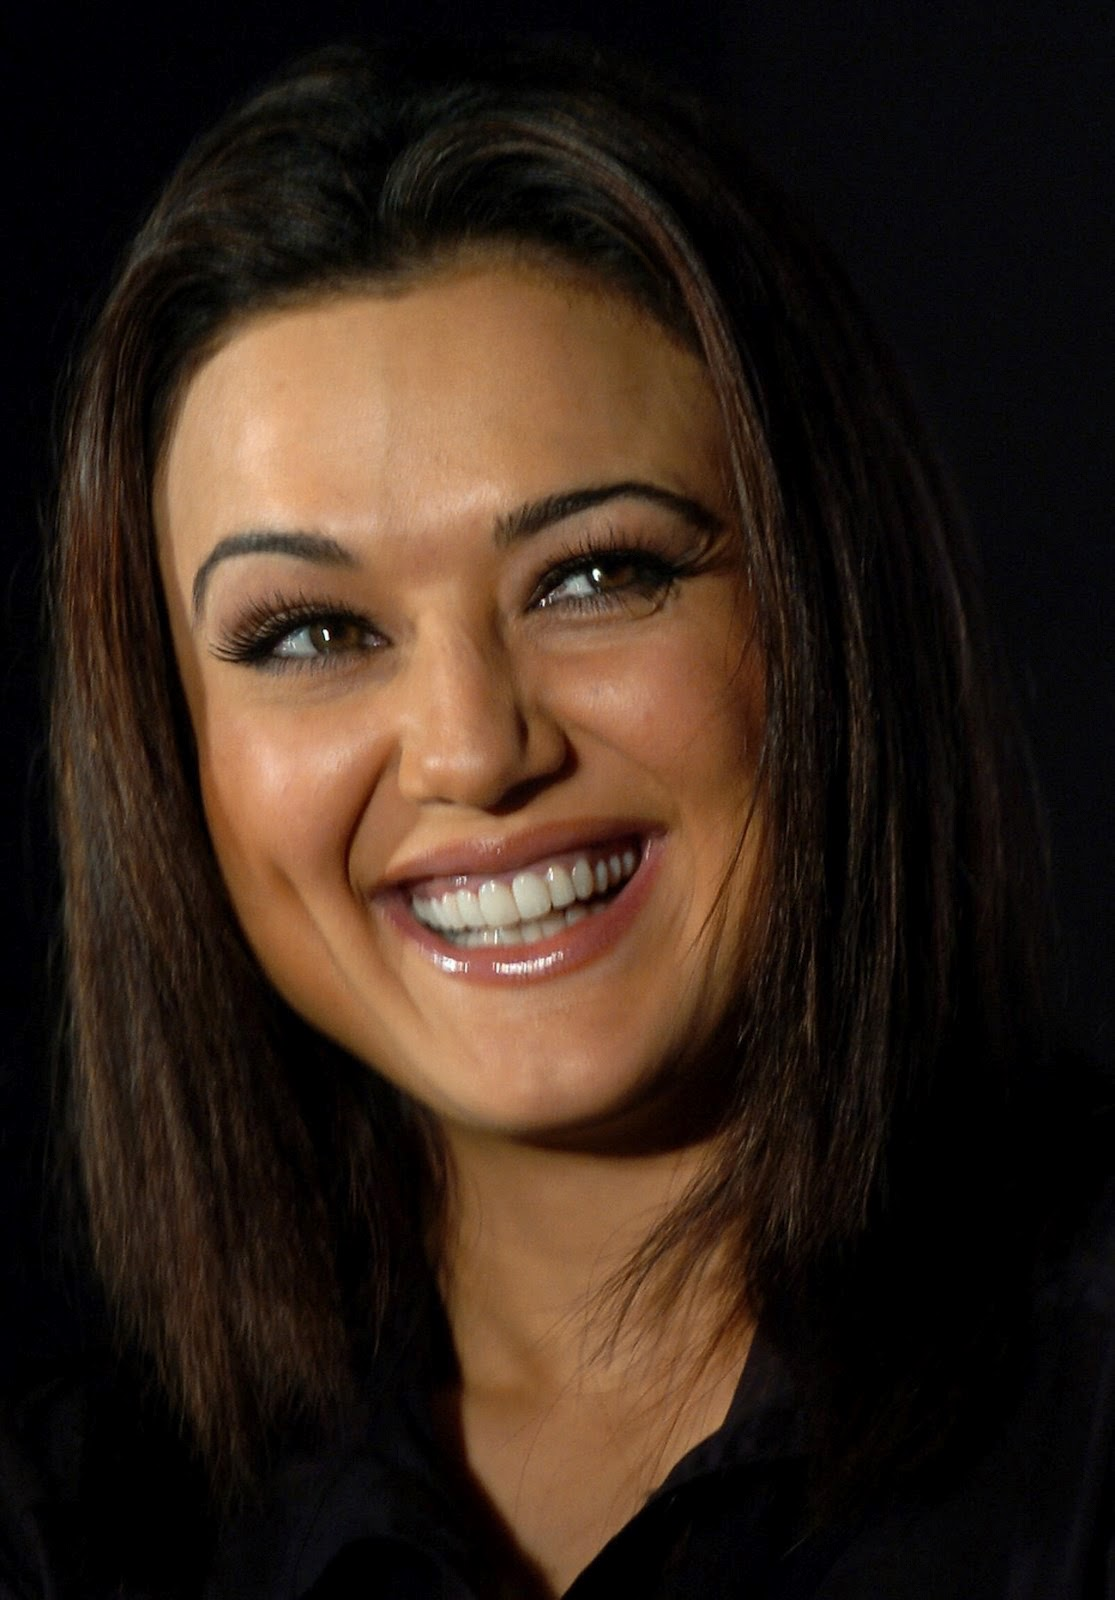 Regret, that photo porno preti zinta seems